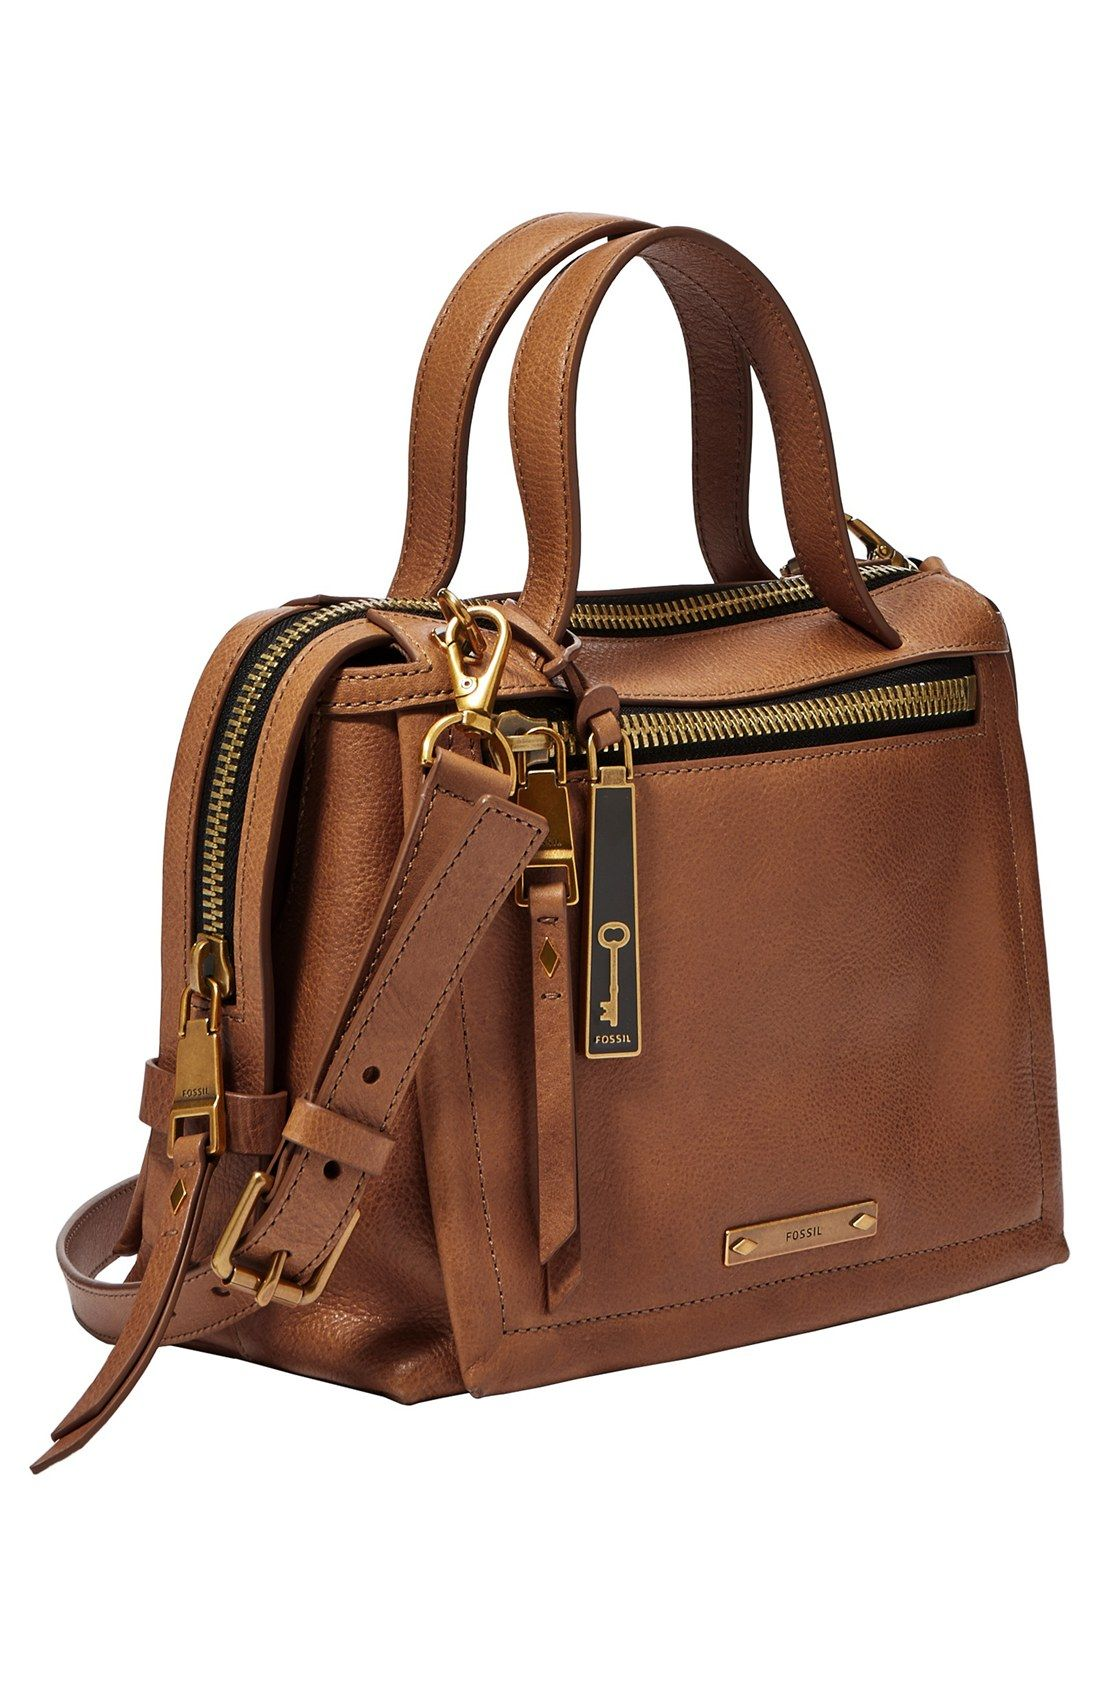 Fossil Bella Small Satchel